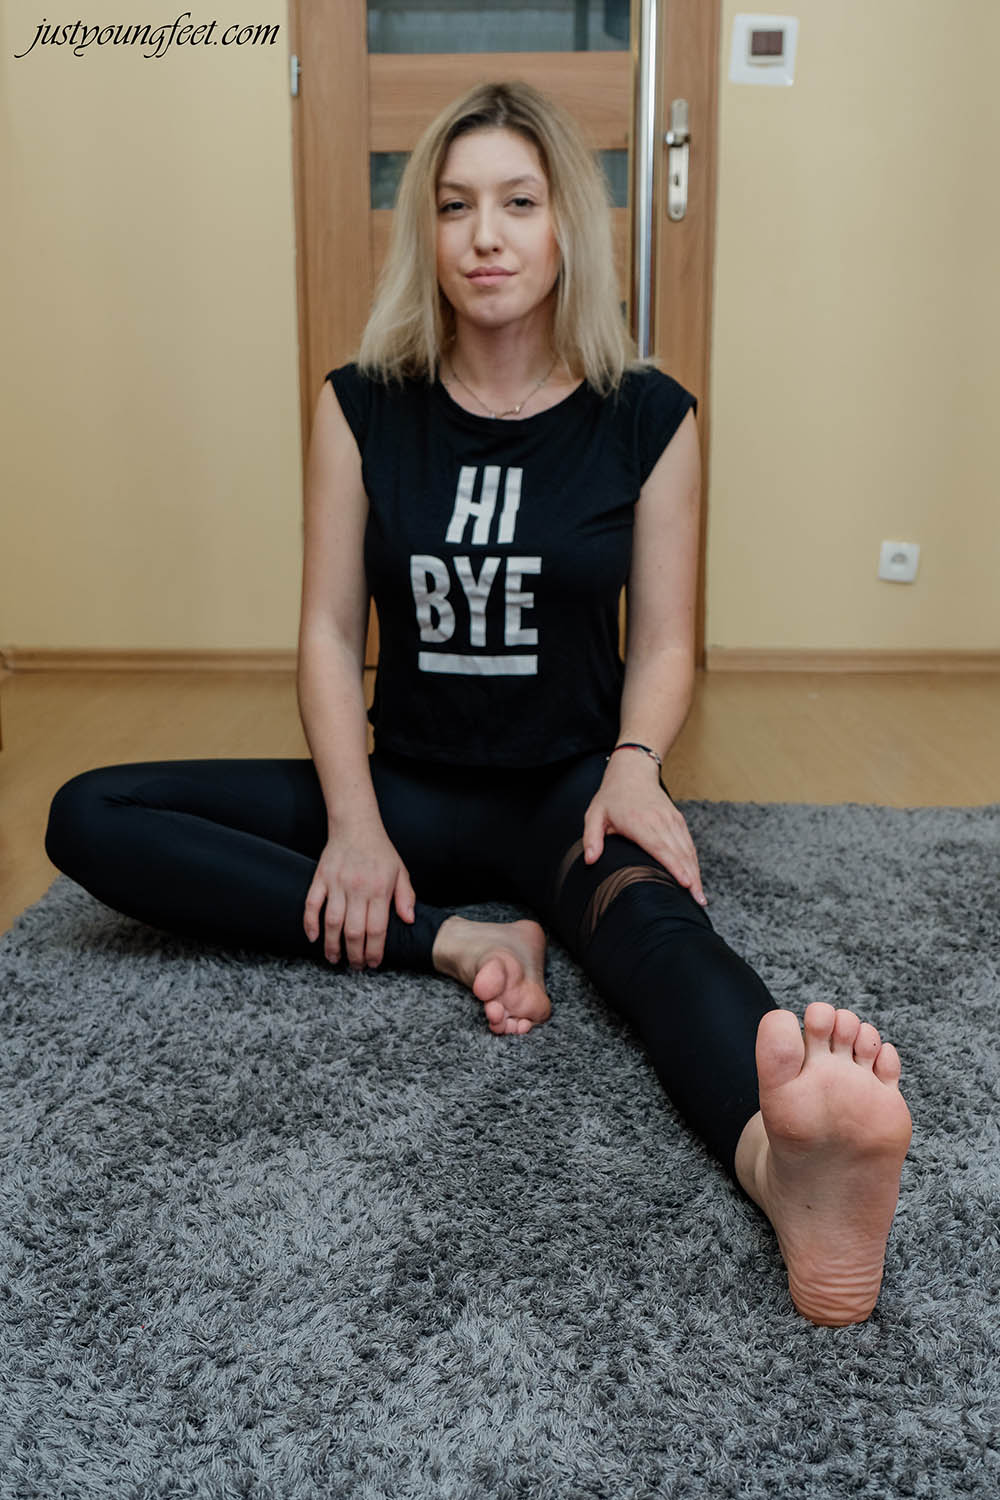 Beautiful girl in black clothes shows the soles of her